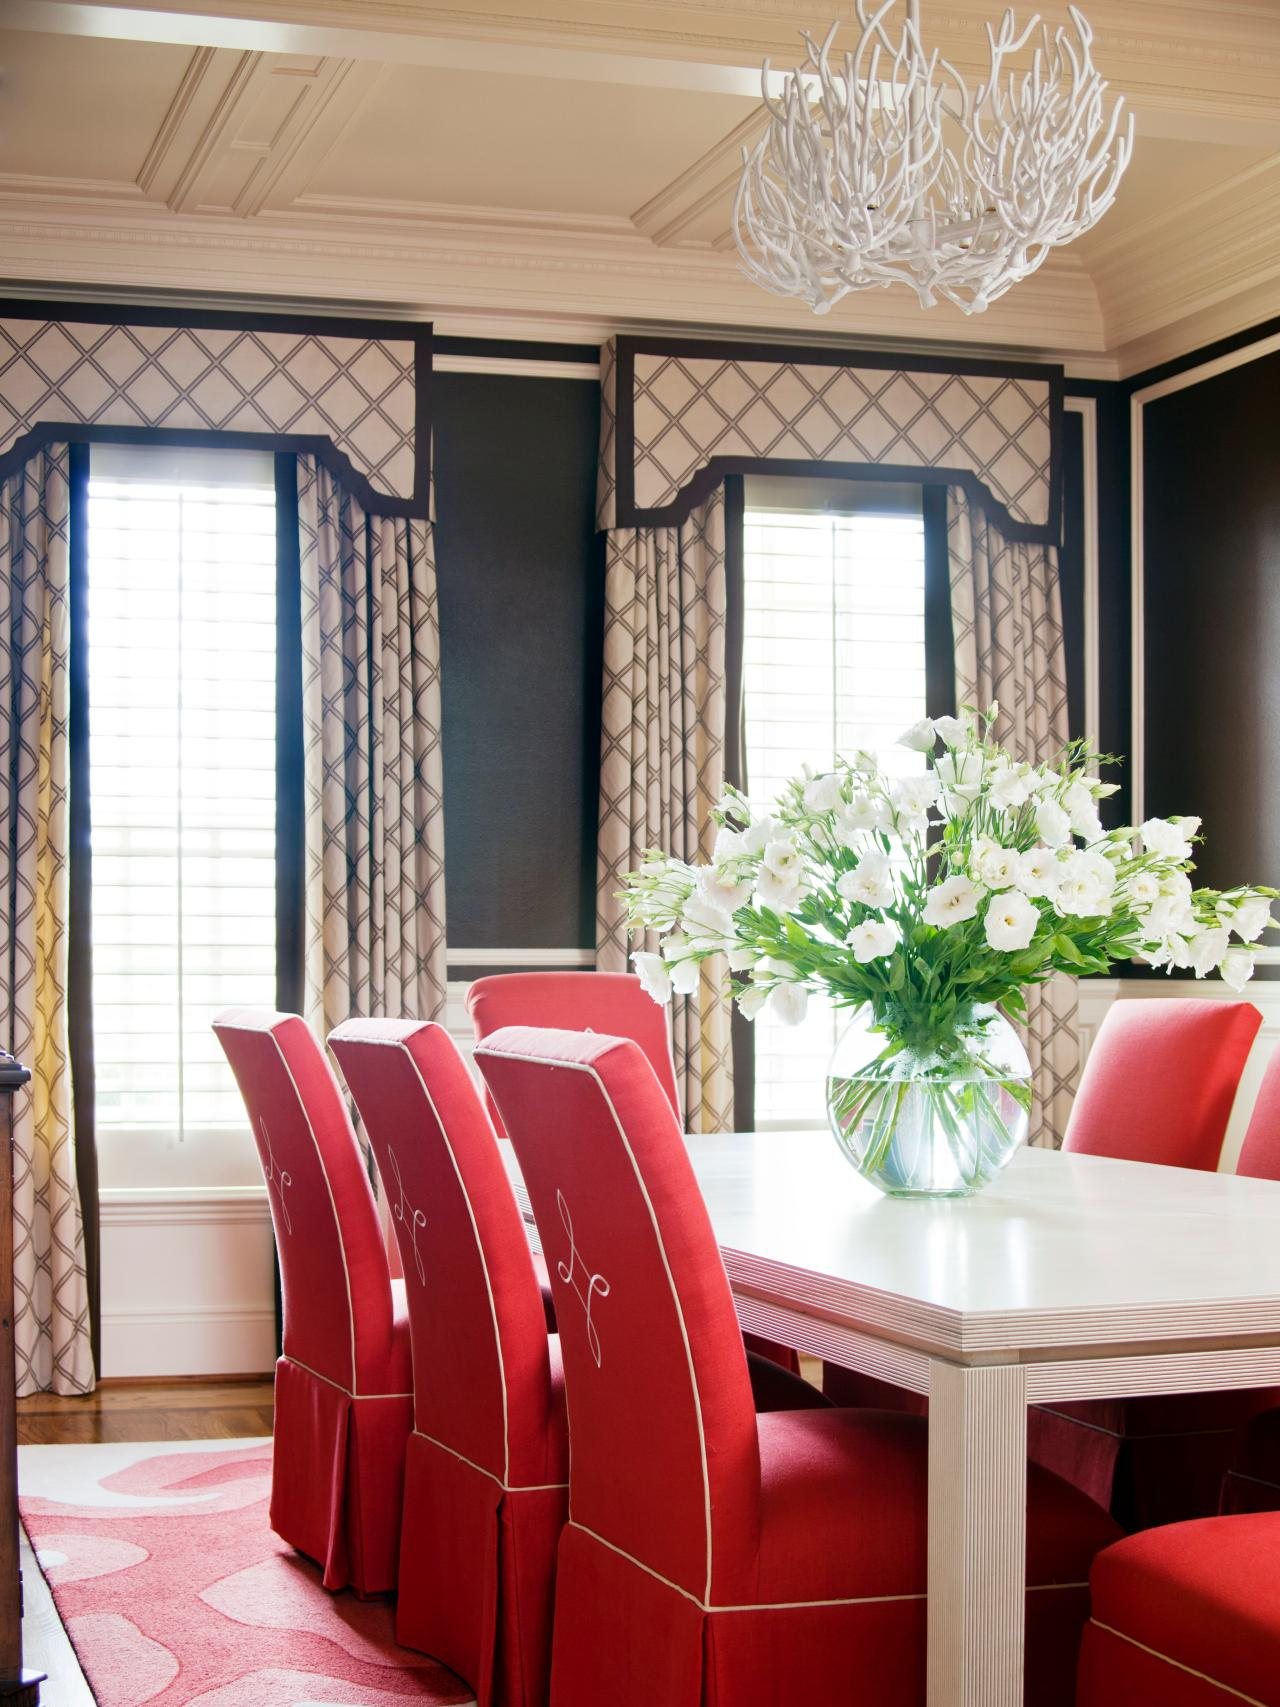 The best window treatments for your style the shade company Dining room window curtains